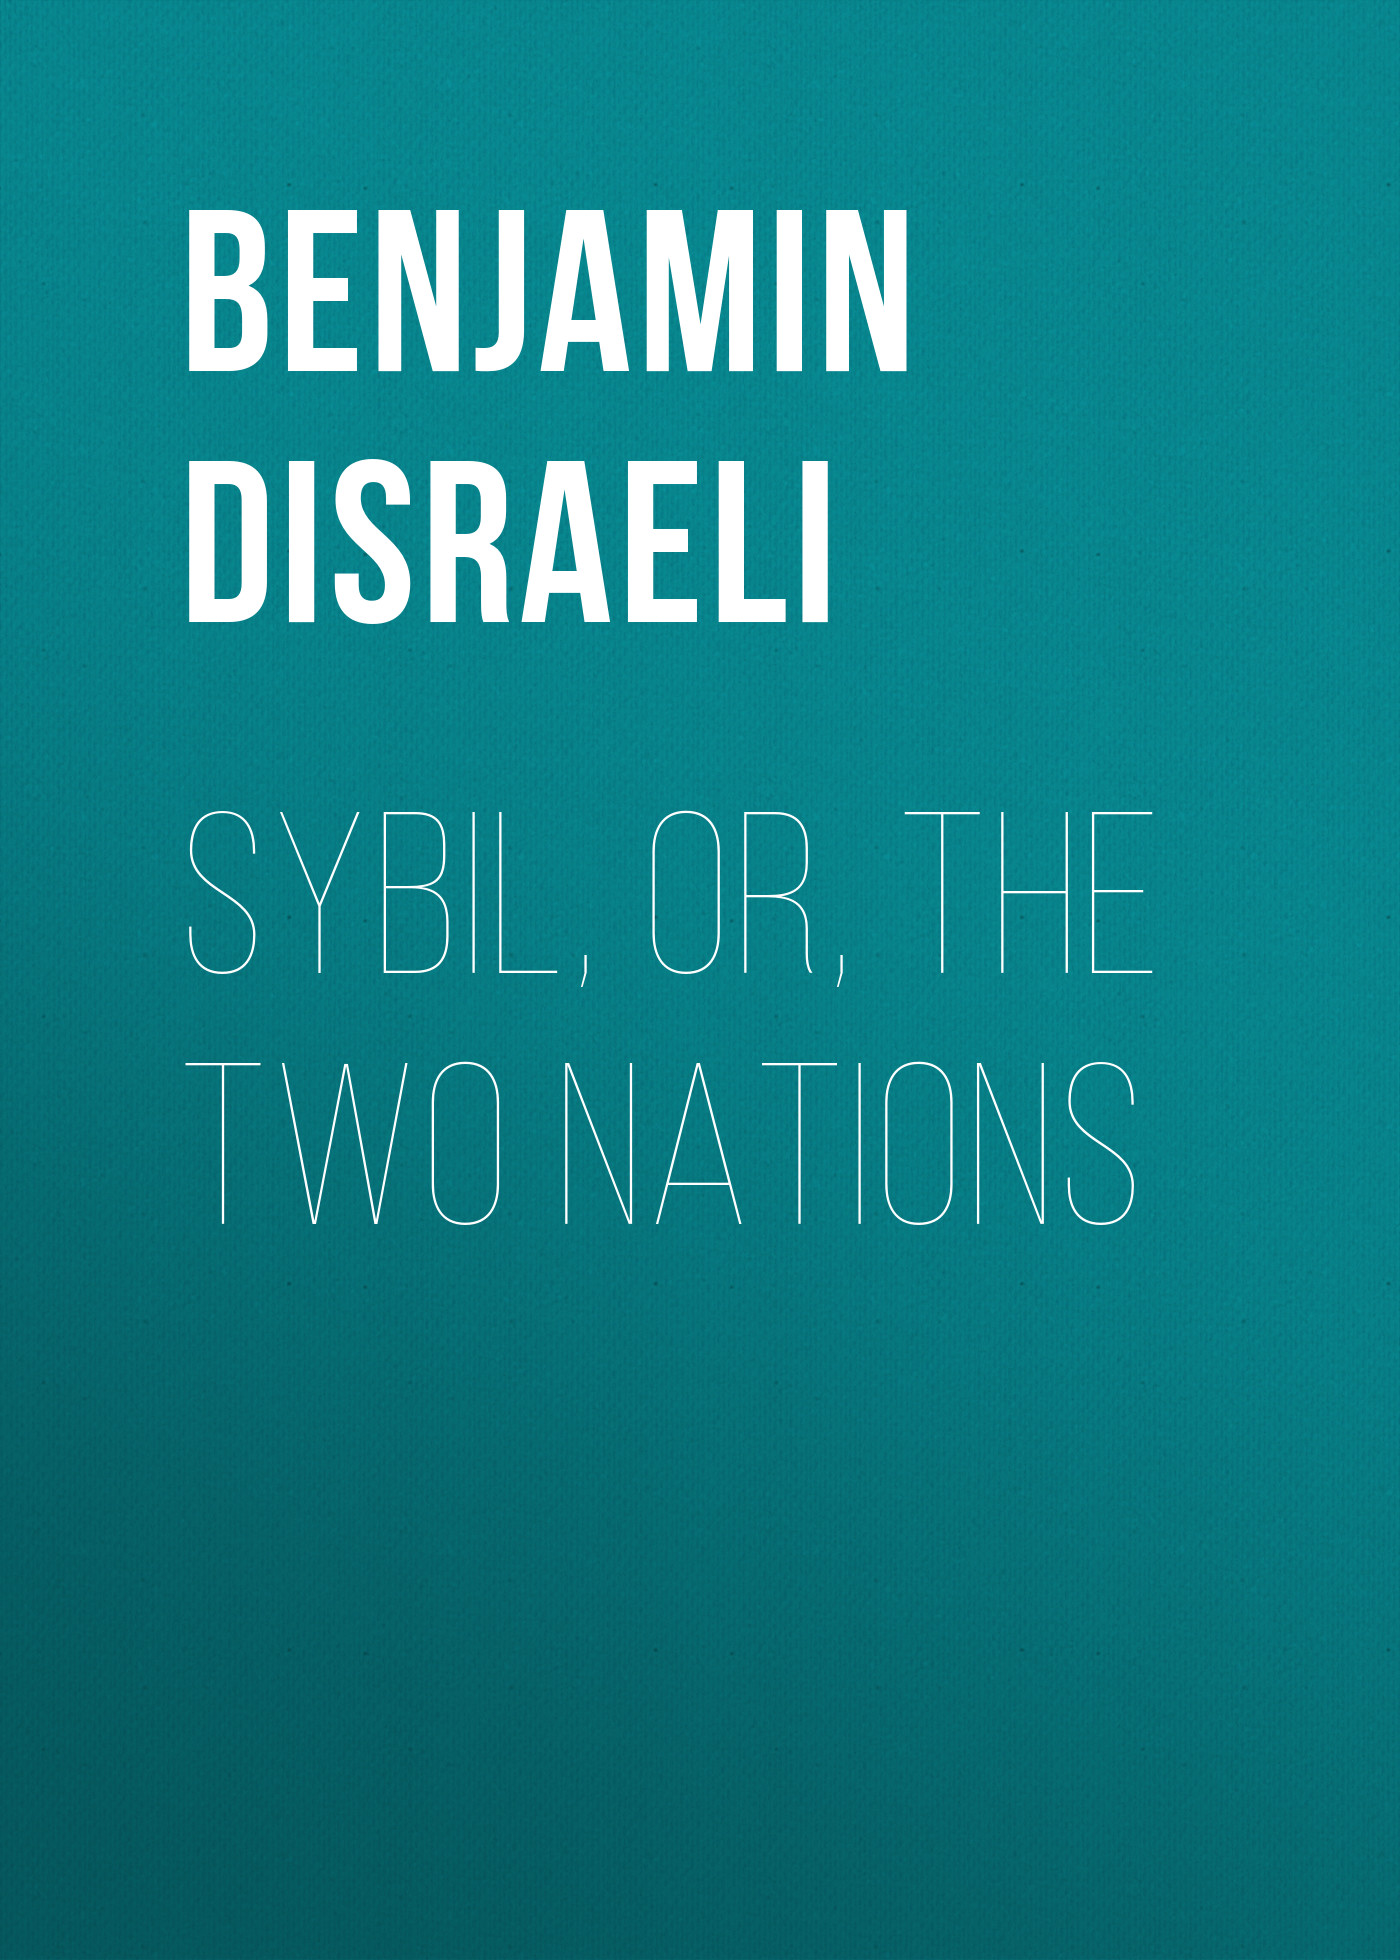 Benjamin Disraeli Sybil, Or, The Two Nations